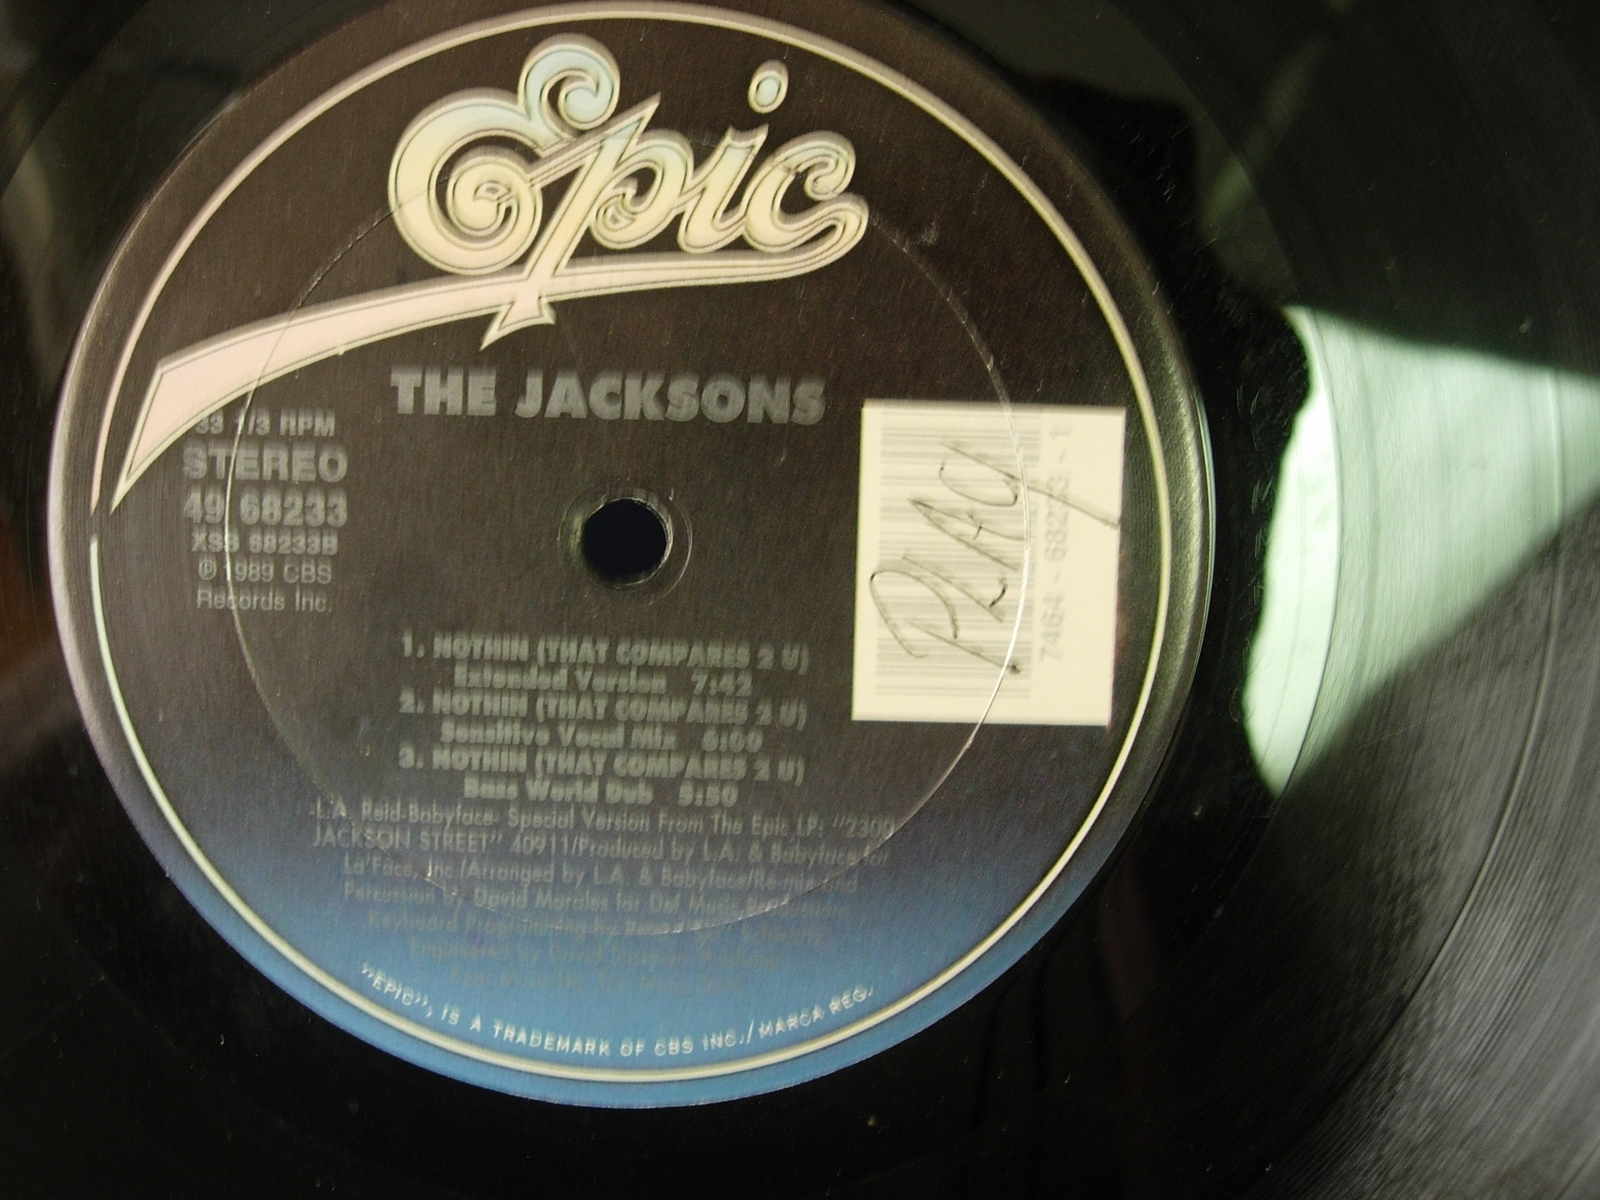 The Jacksons - Nothin (That Compares 2 U) - Epic 49 68233